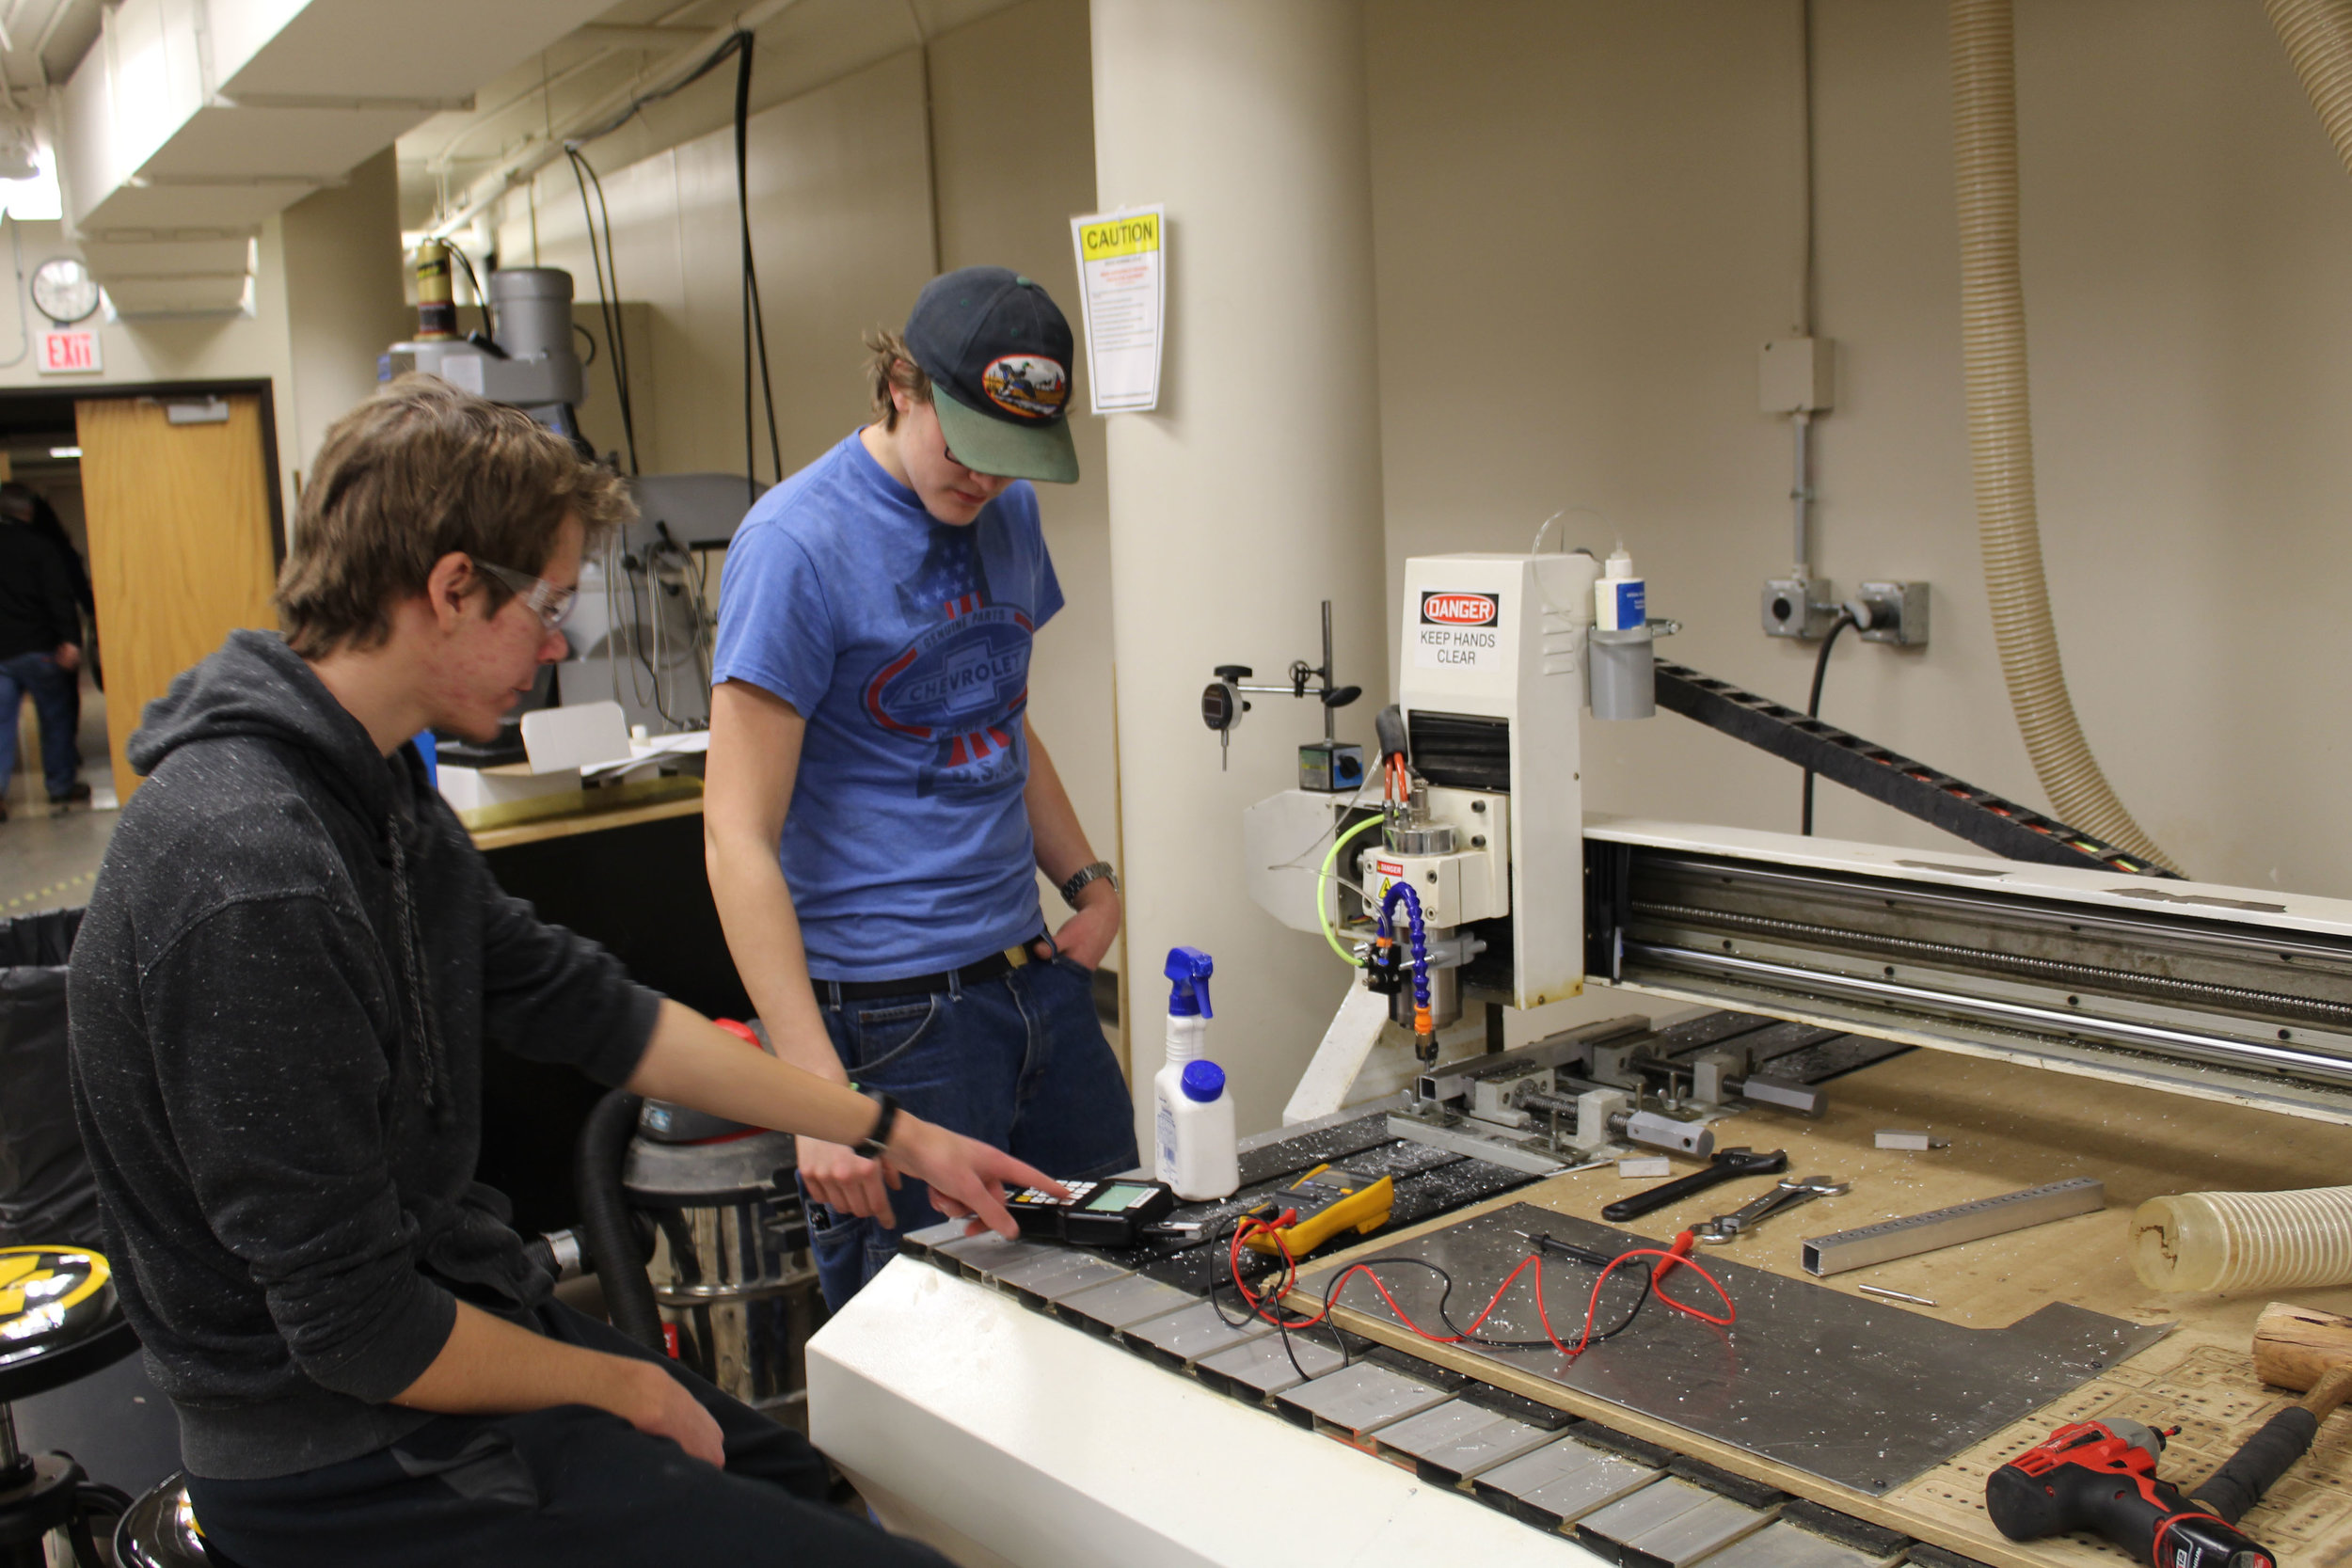 Simon and Jared cutting parts for the robot